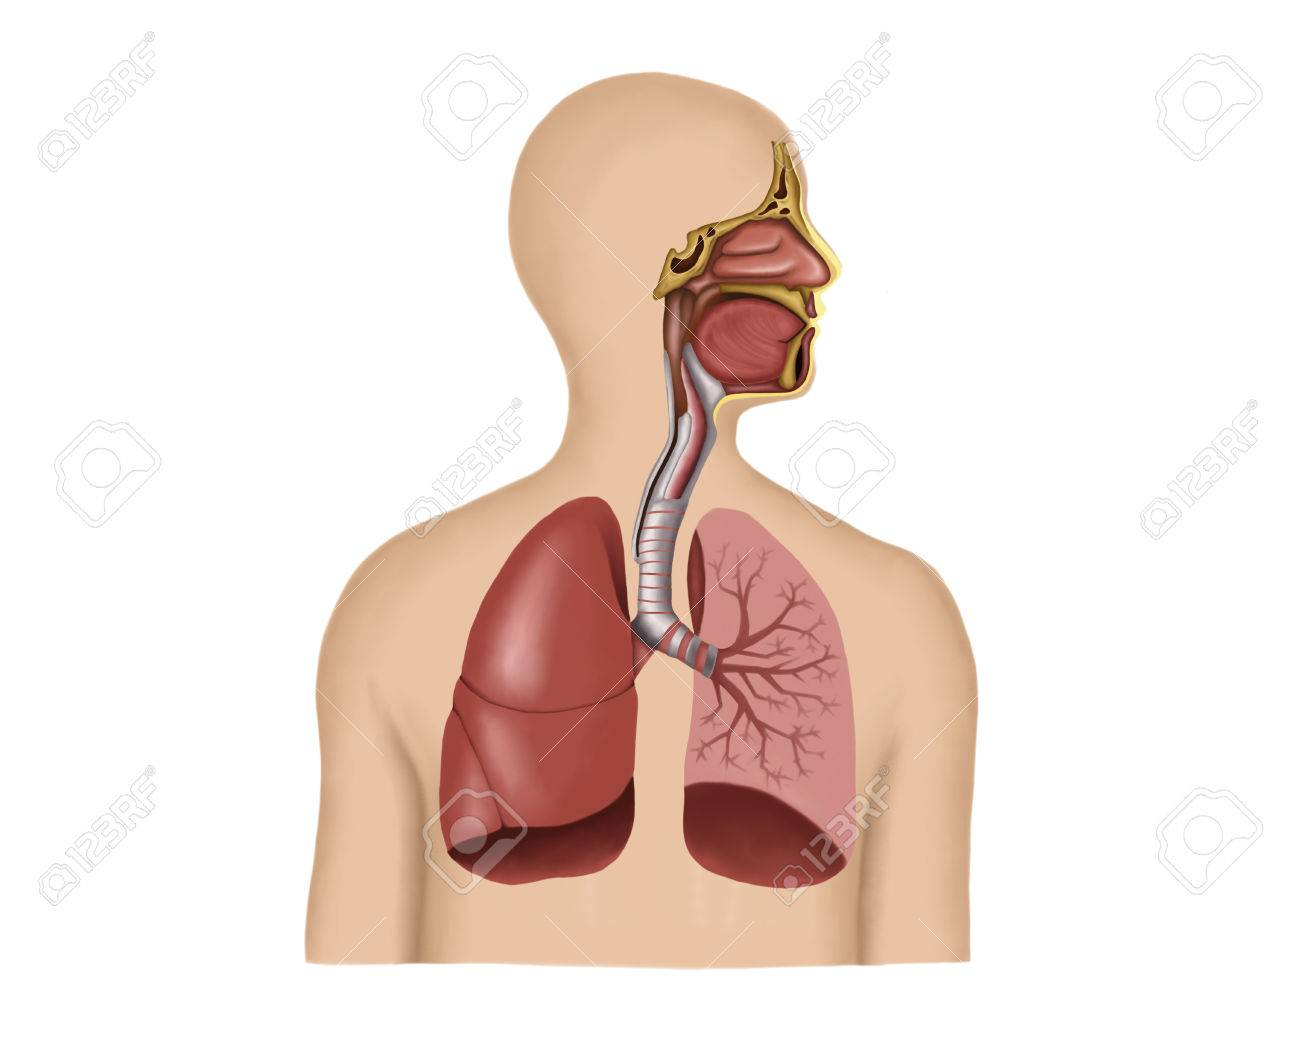 Anatomy Of Human Respiratory System. Stock Photo, Picture And ...